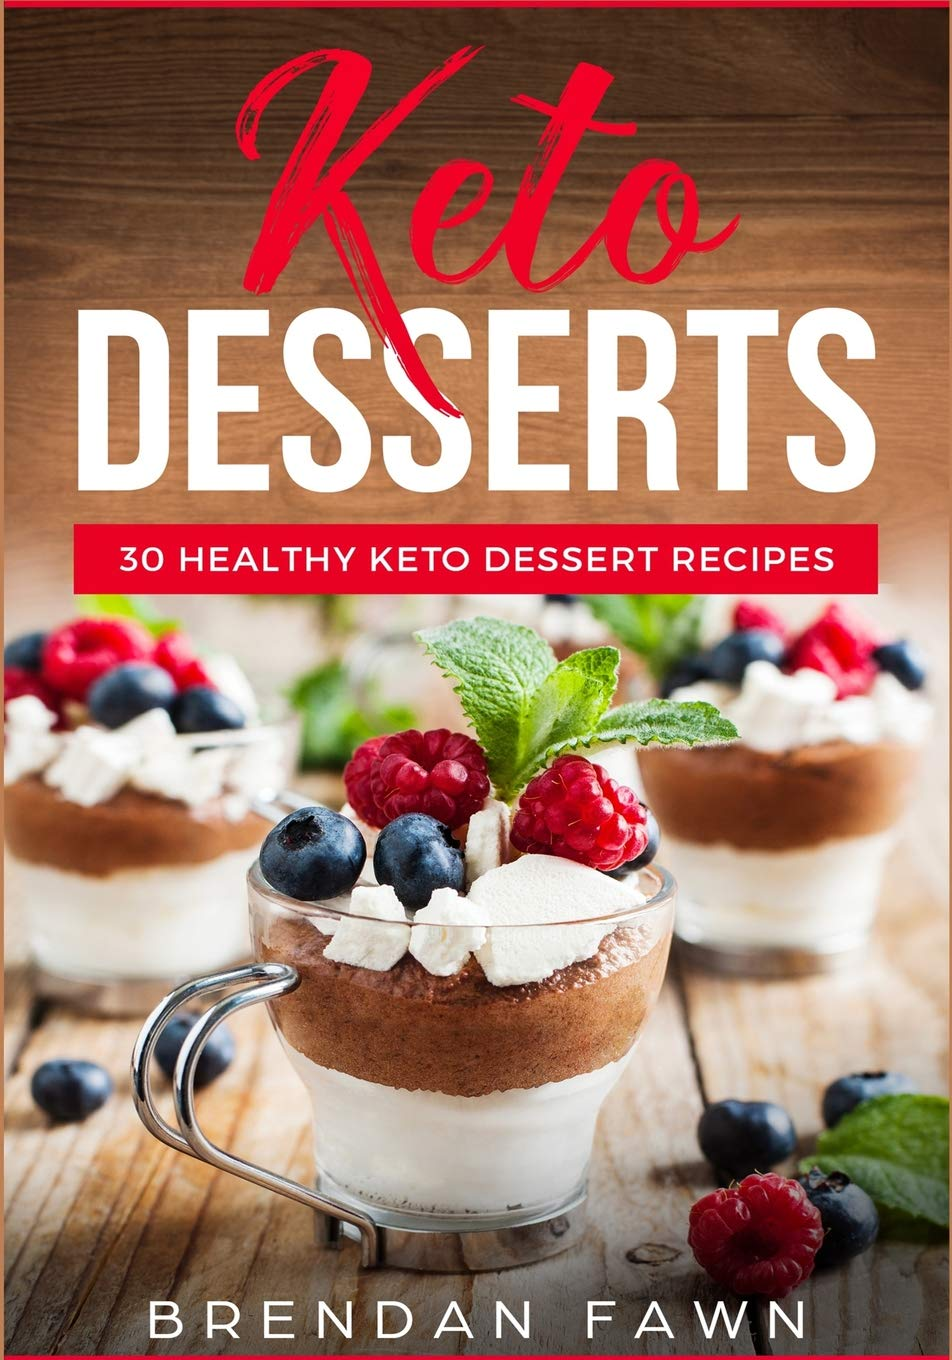 Keto-Friendly Dessert Recipes Keto Sweets Released In 2020